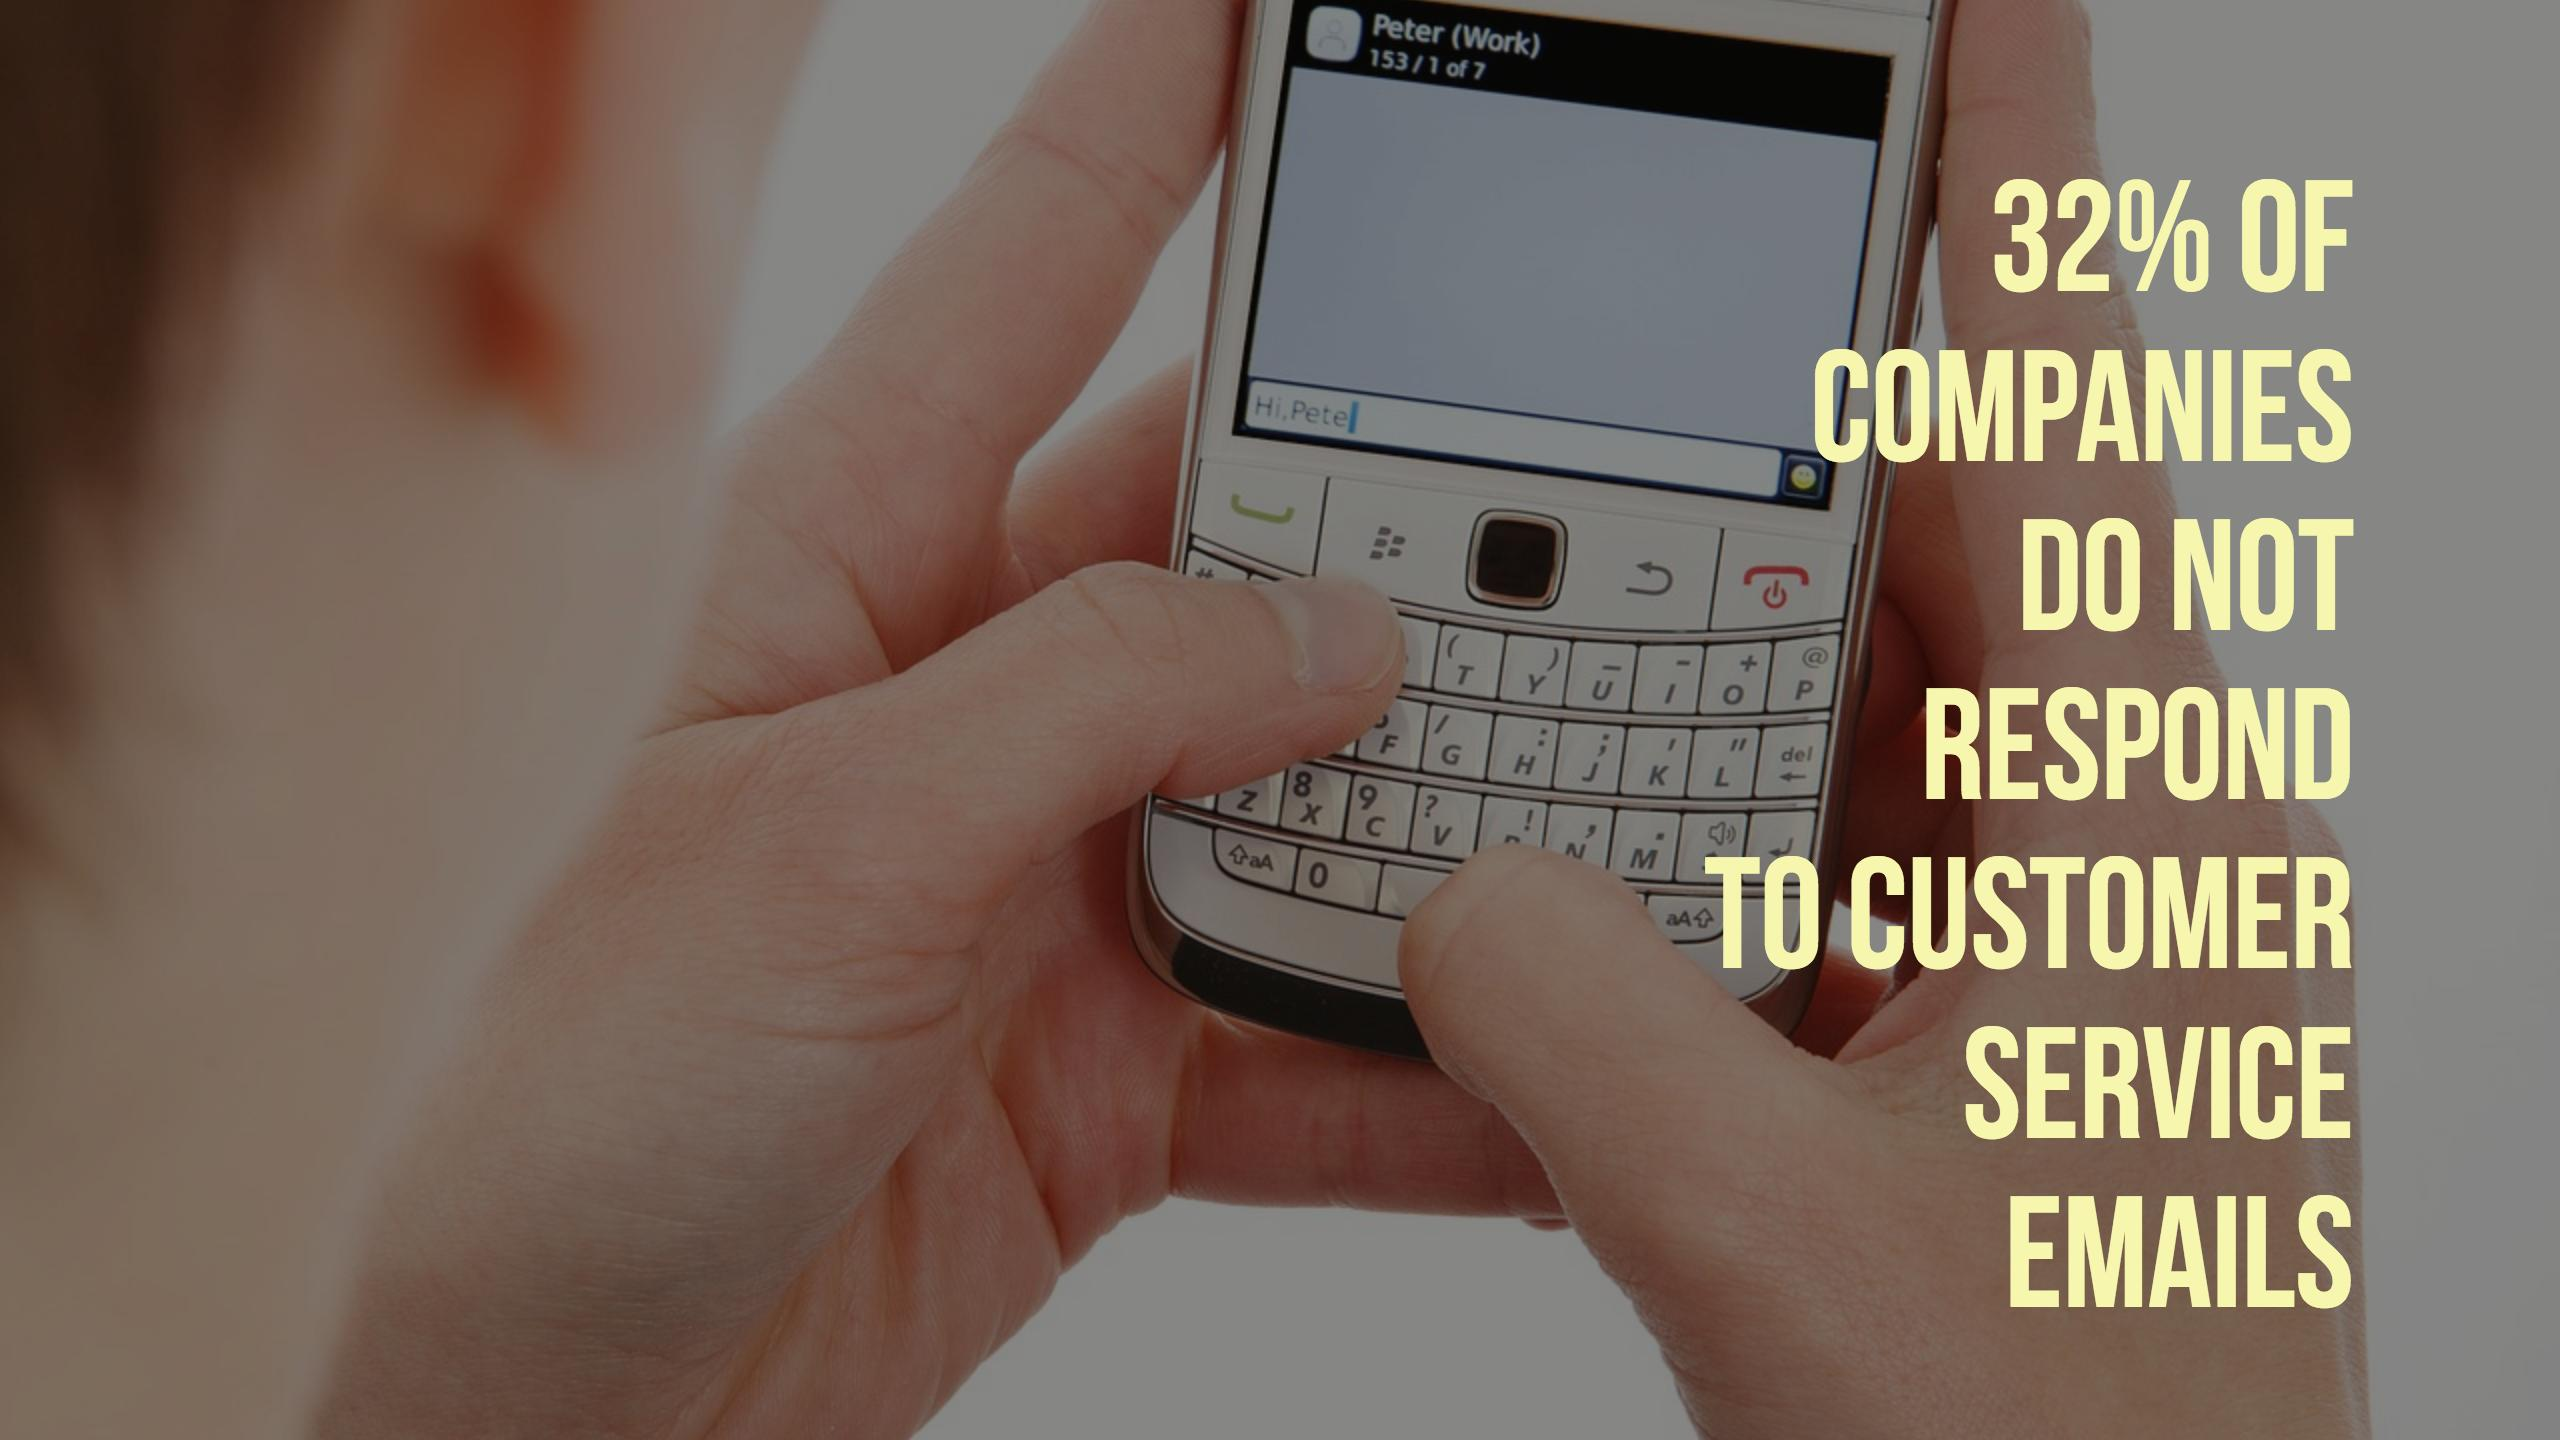 respond to security alarm customer emails to retain